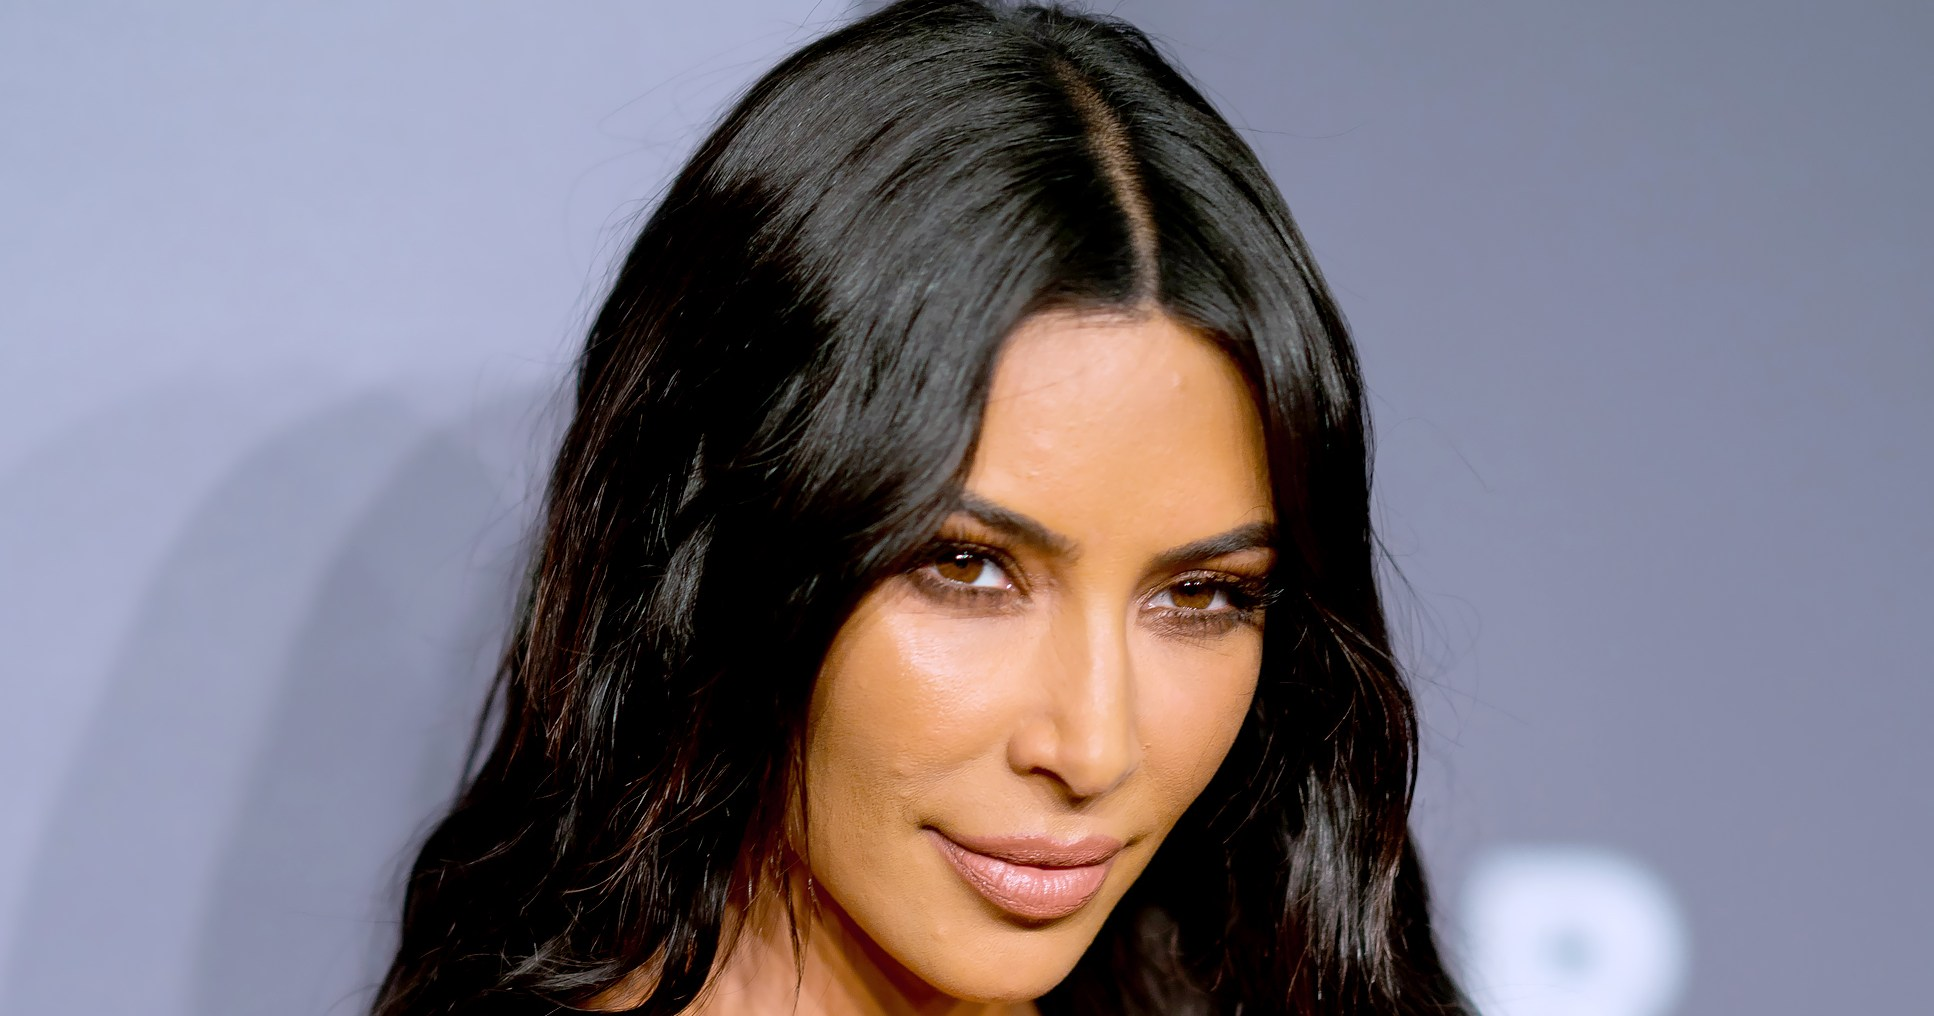 Kim Kardashian Gets Real With Selfie: 'Psoriasis Is the Sh-ts'